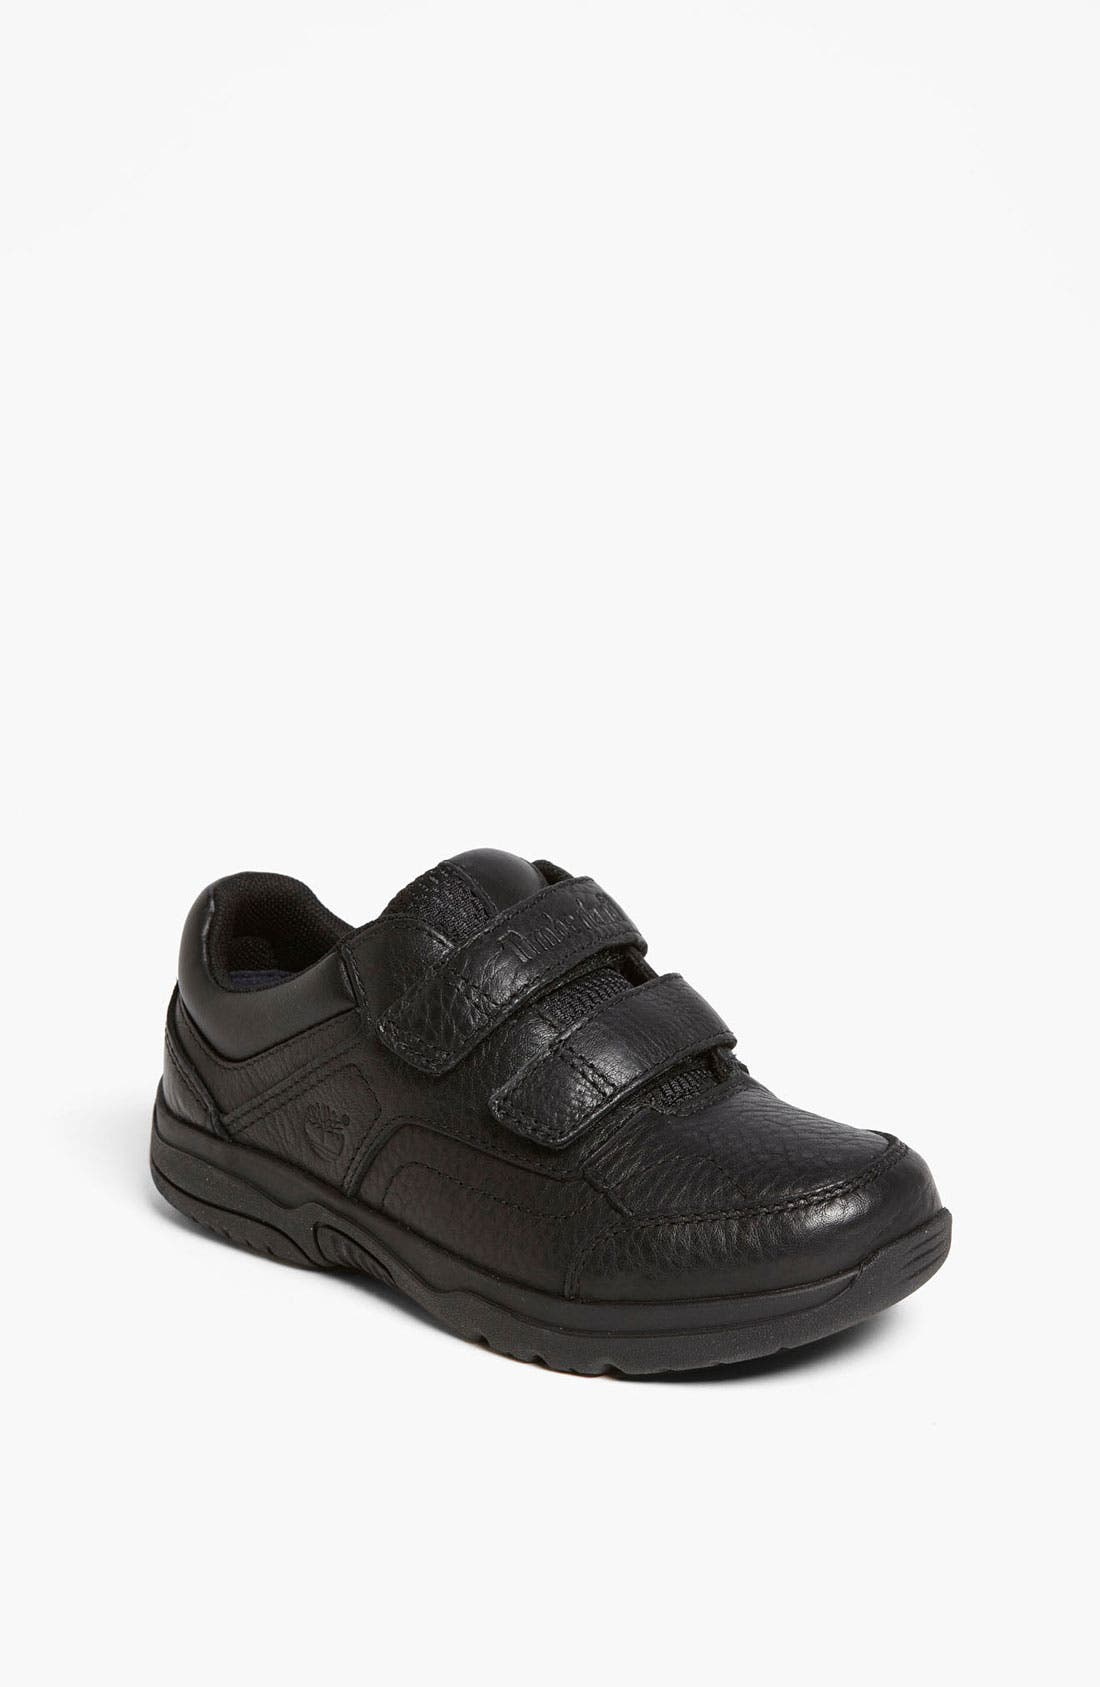 Alternate Image 1 Selected - Timberland Earthkeepers® 'Park Street' Dress Shoe (Toddler, Little Kid & Big Kid)